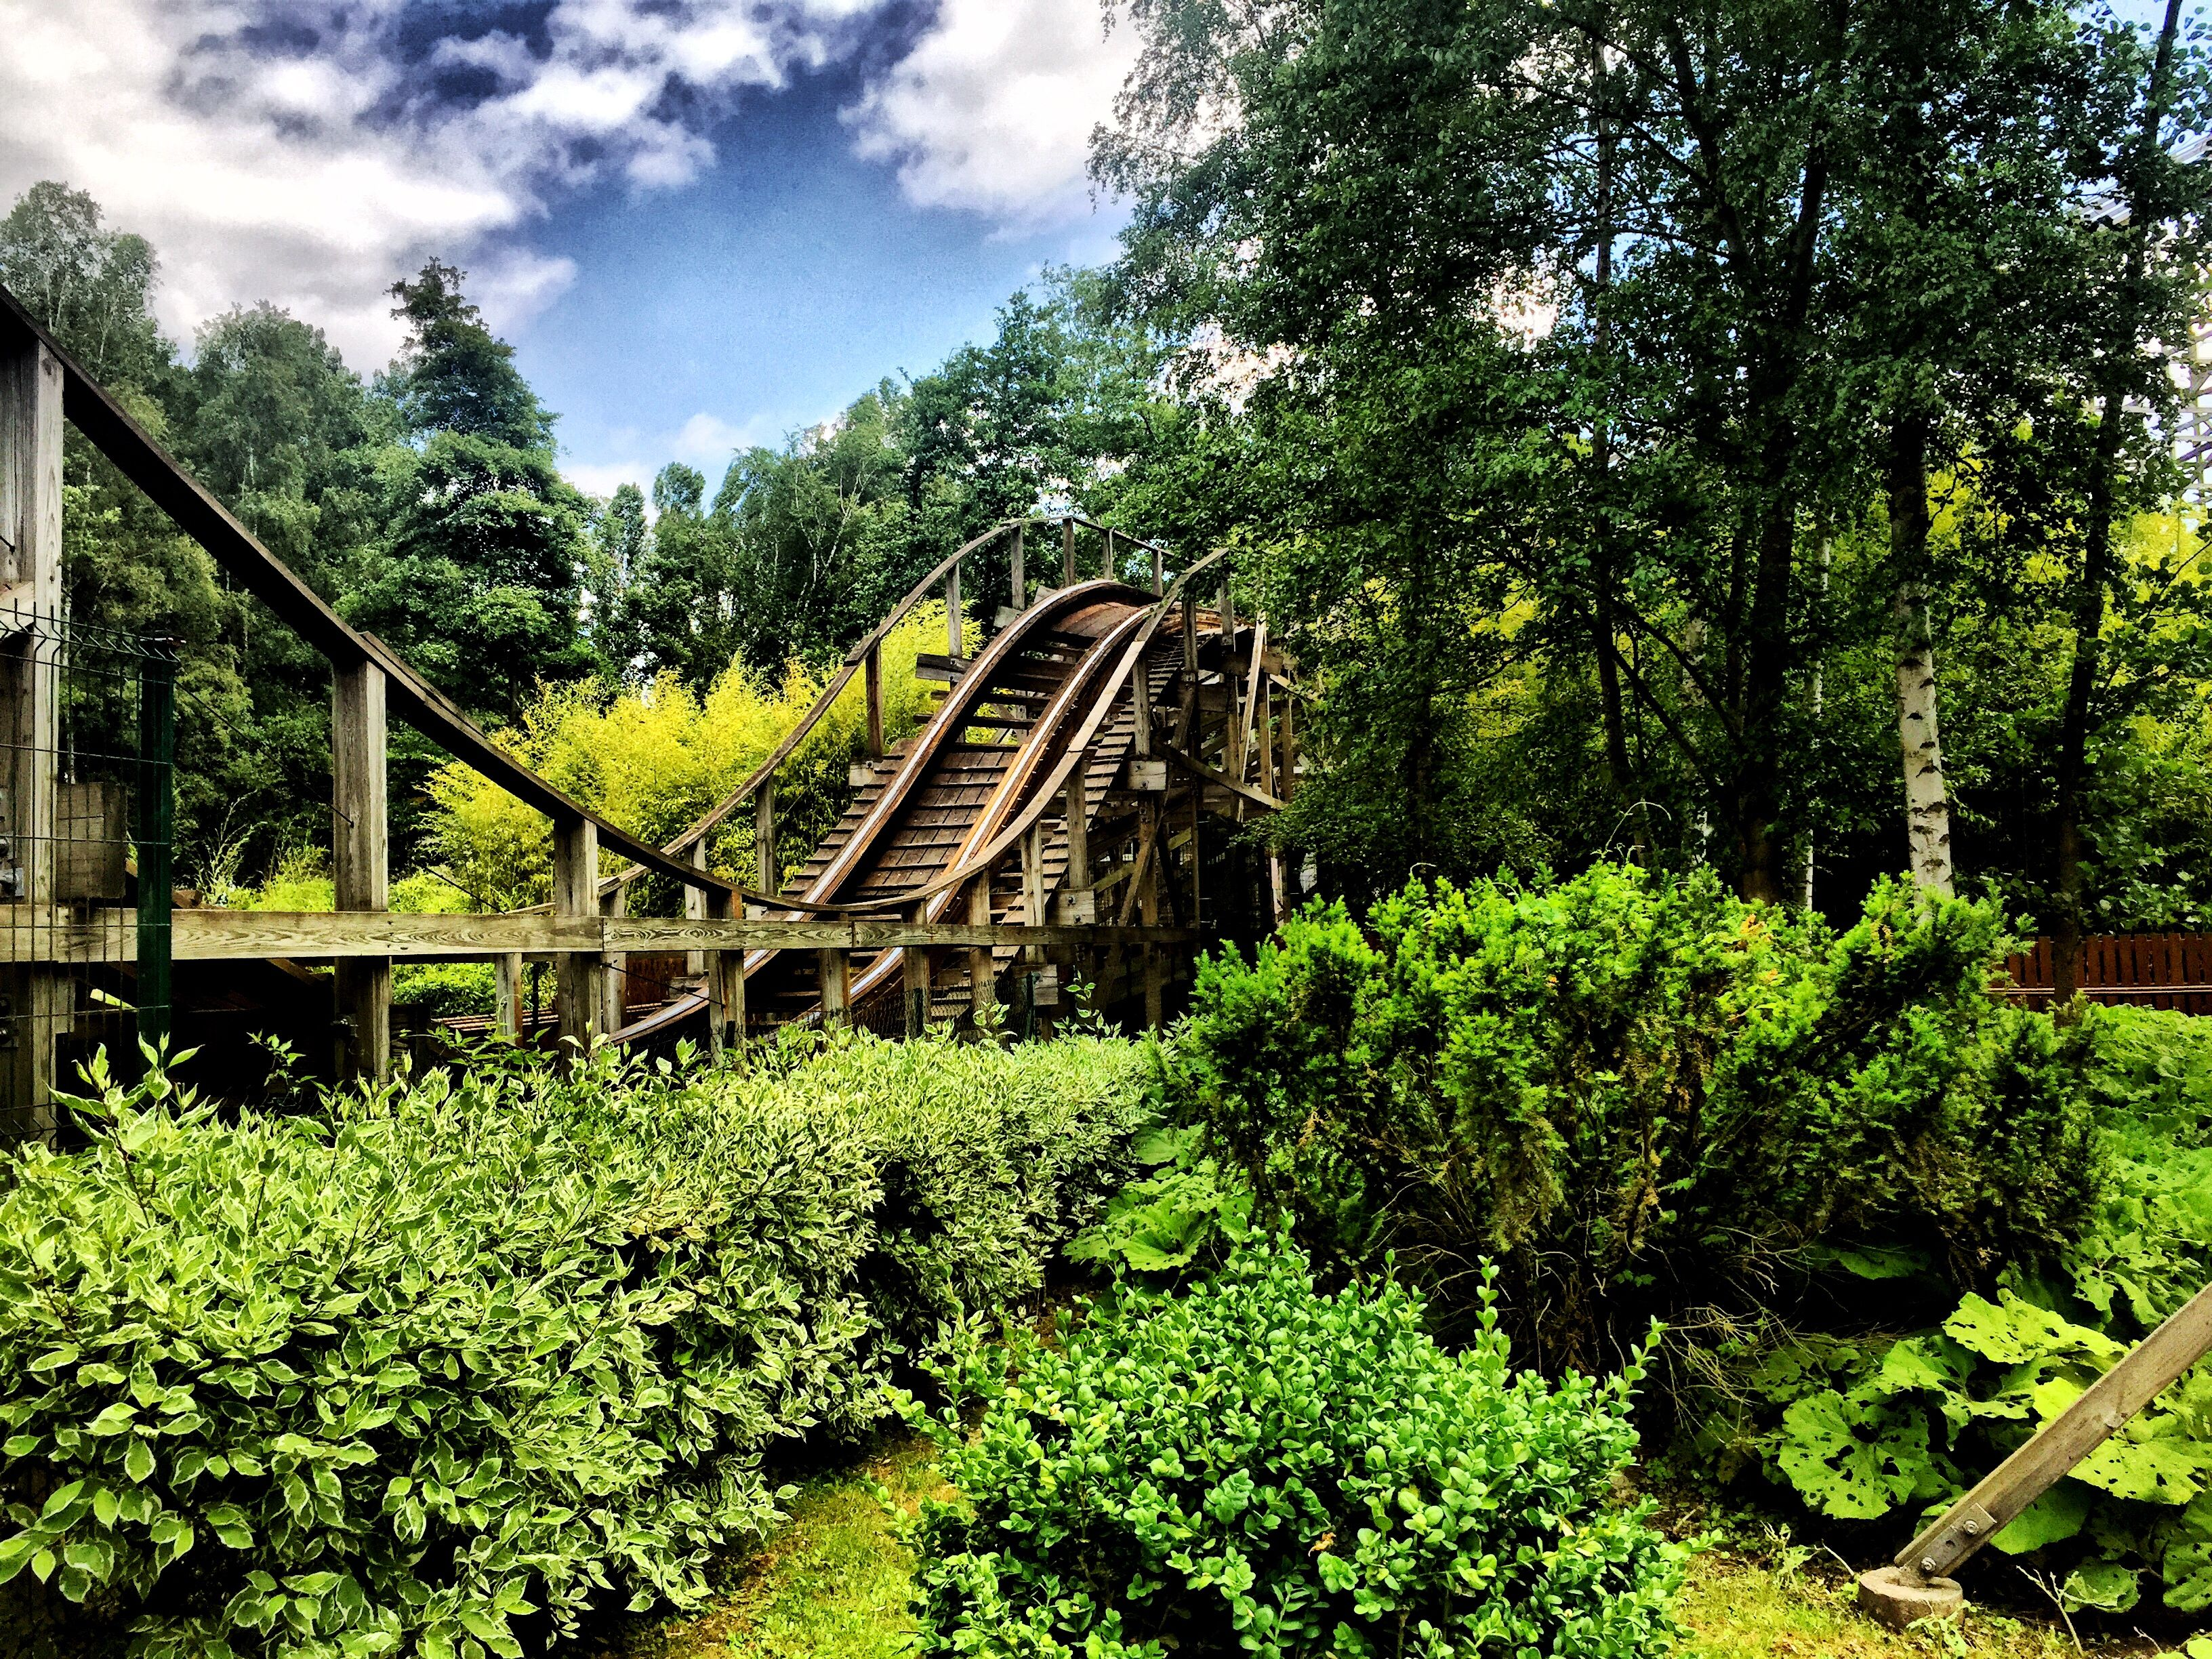 Rollercoaster Track Amidst Trees And Plants In Parc Asterix